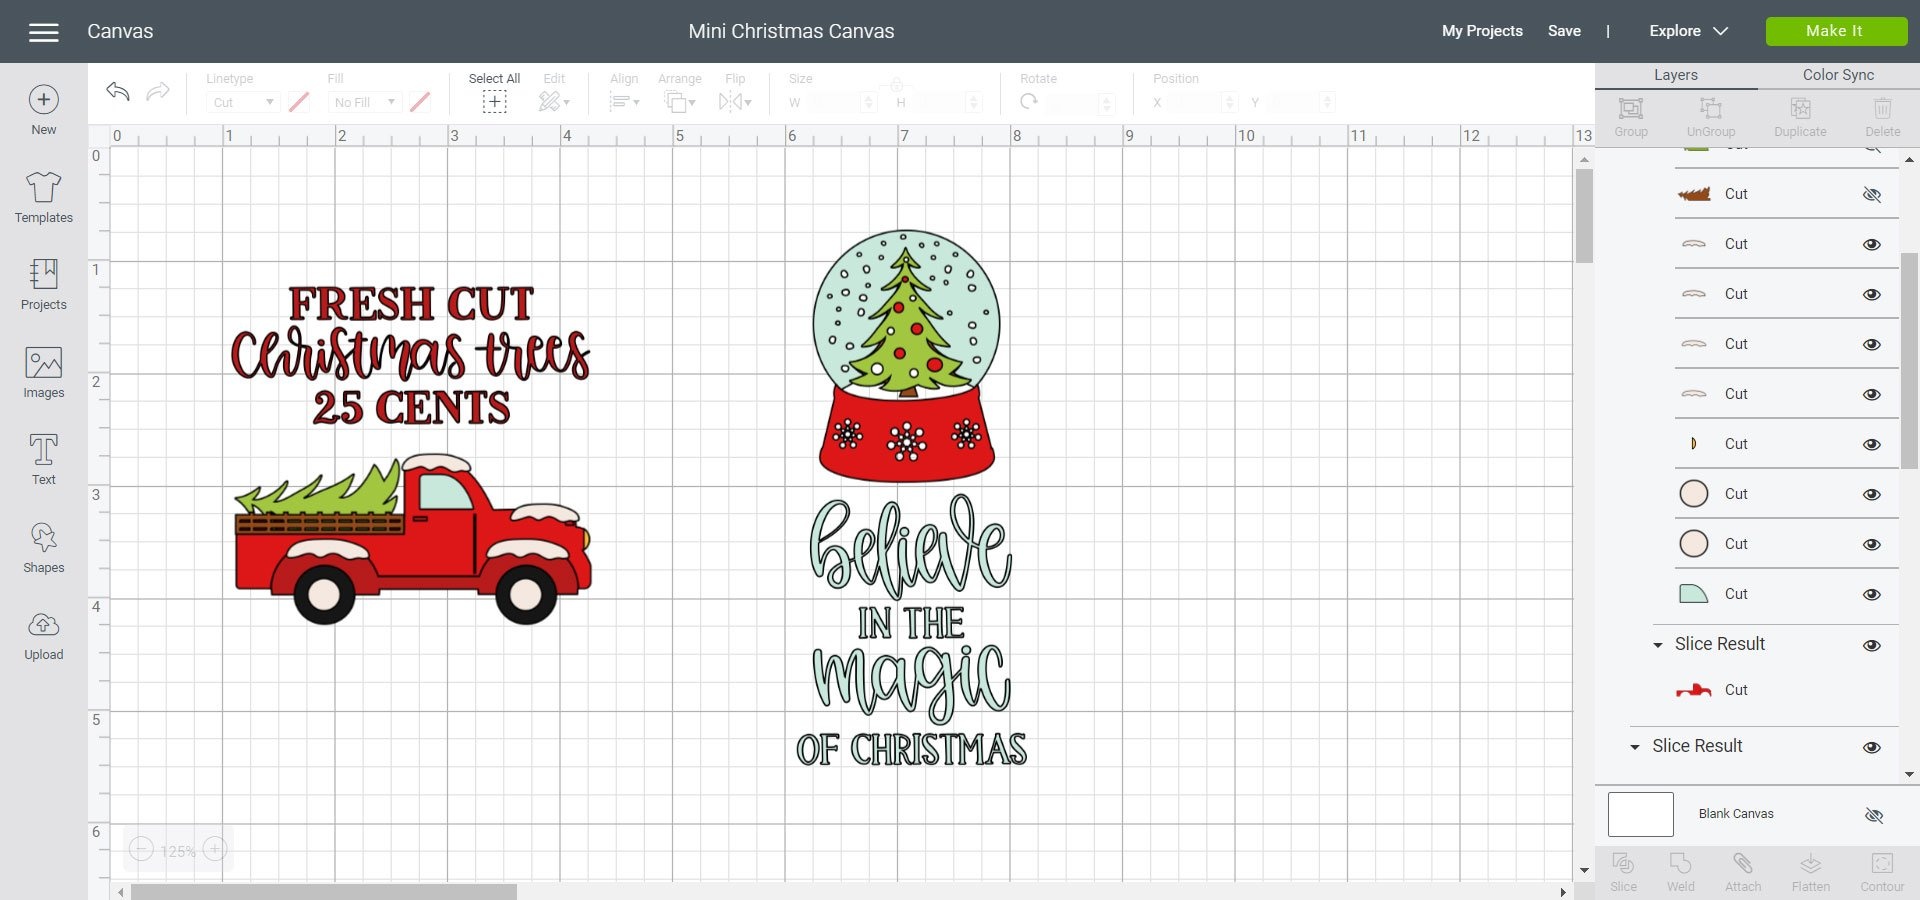 Cricut Design Space Mini Christmas Canvas